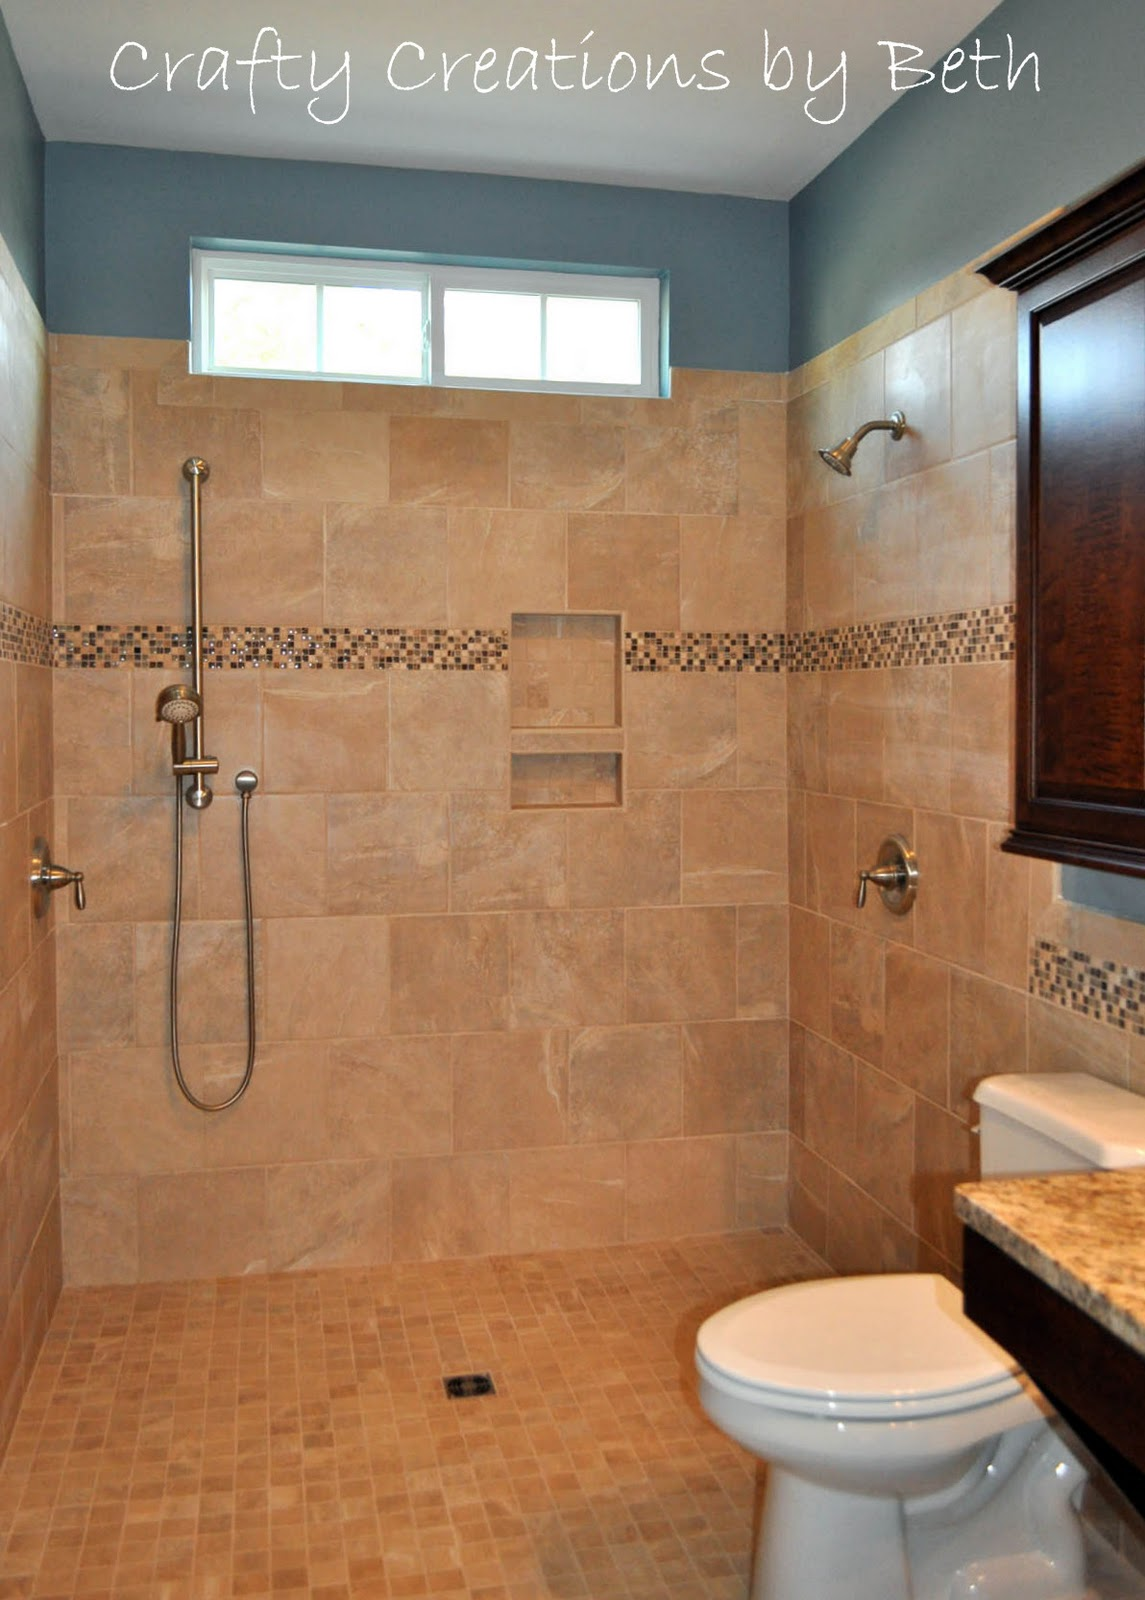 Wheelchair accessible bathroom remodel sonya hamilton for Pictures of handicap bathrooms